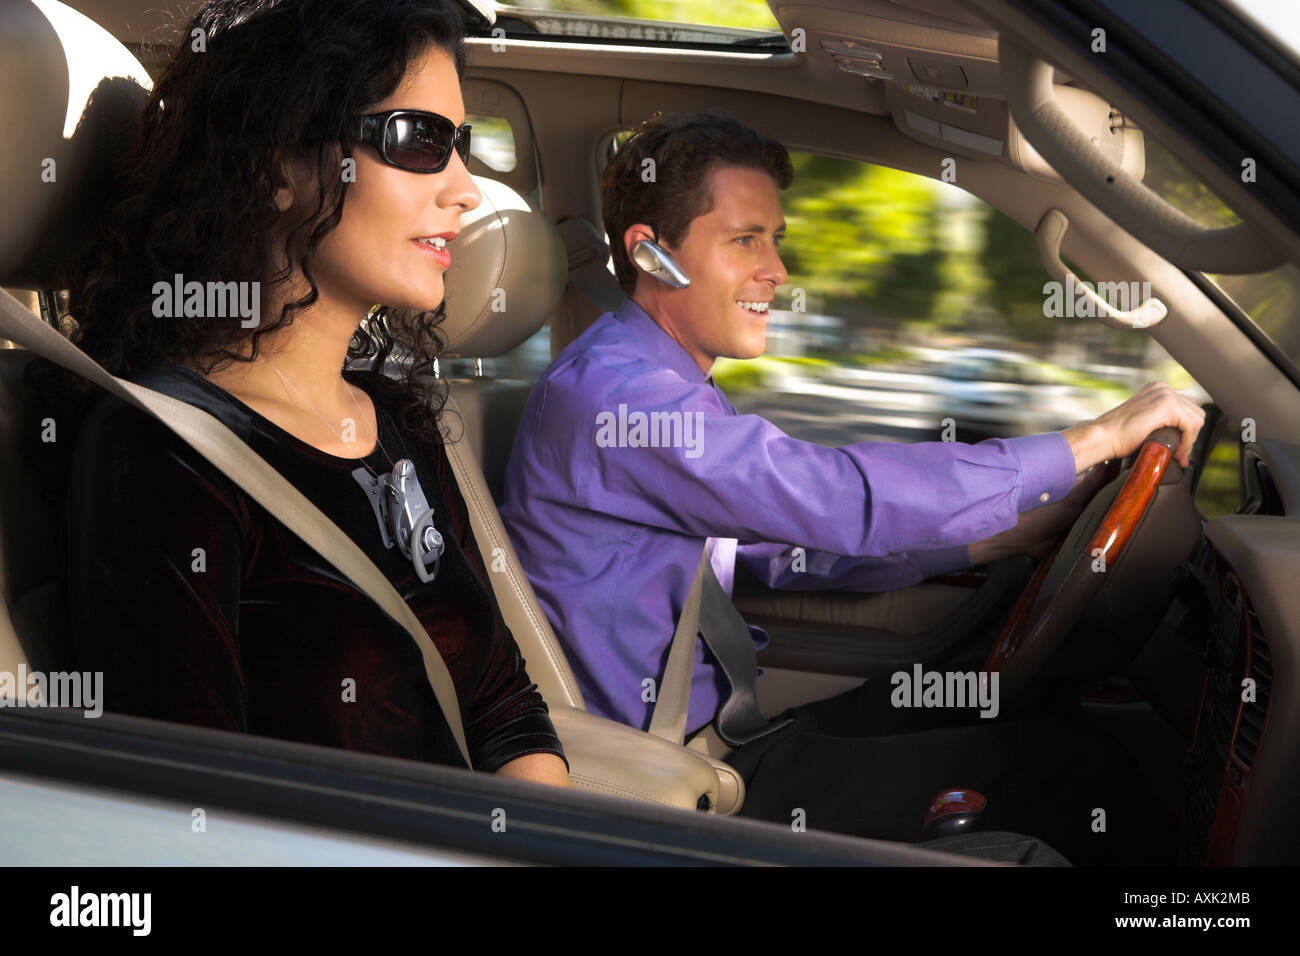 man male lady woman female partners work career driving car steering sheel seatbelt safety sunglasses movement phone - Stock Image